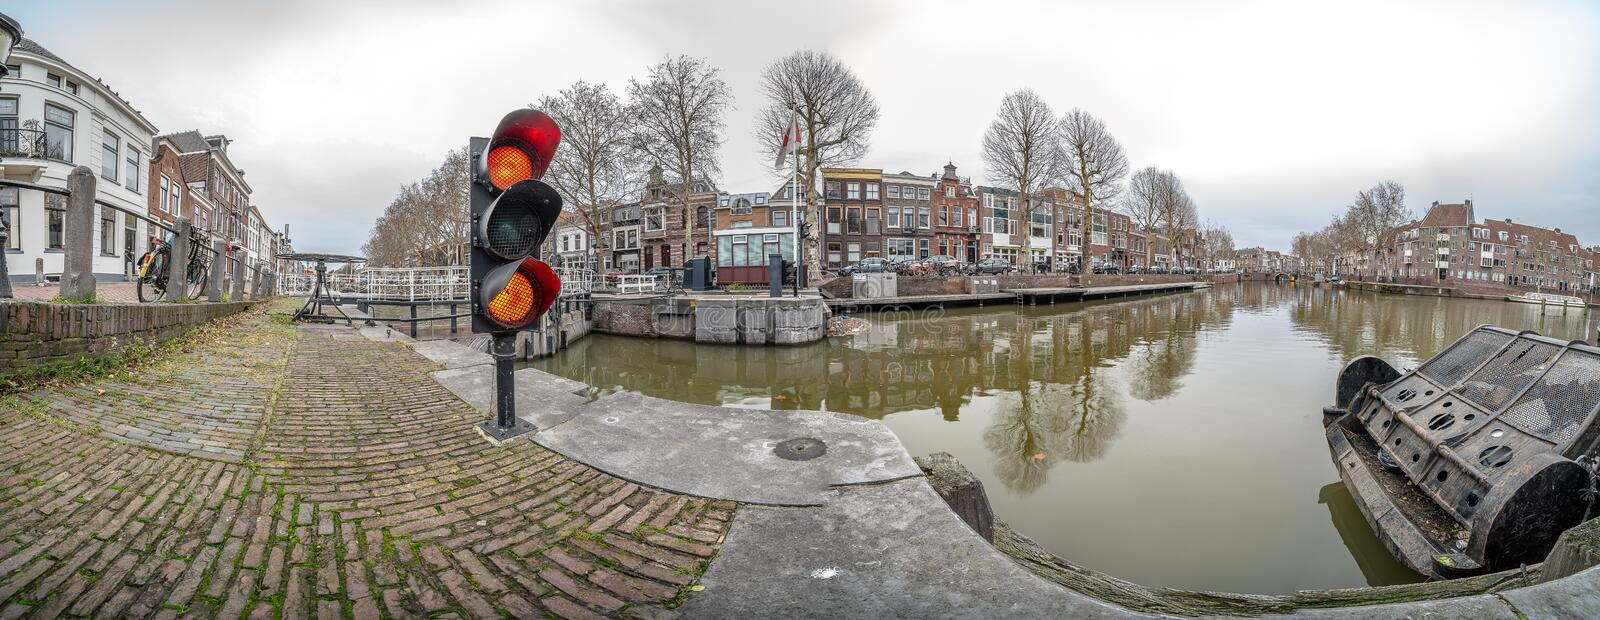 Panoramic image of the canals in Utrecht in the Netherlands stock photos